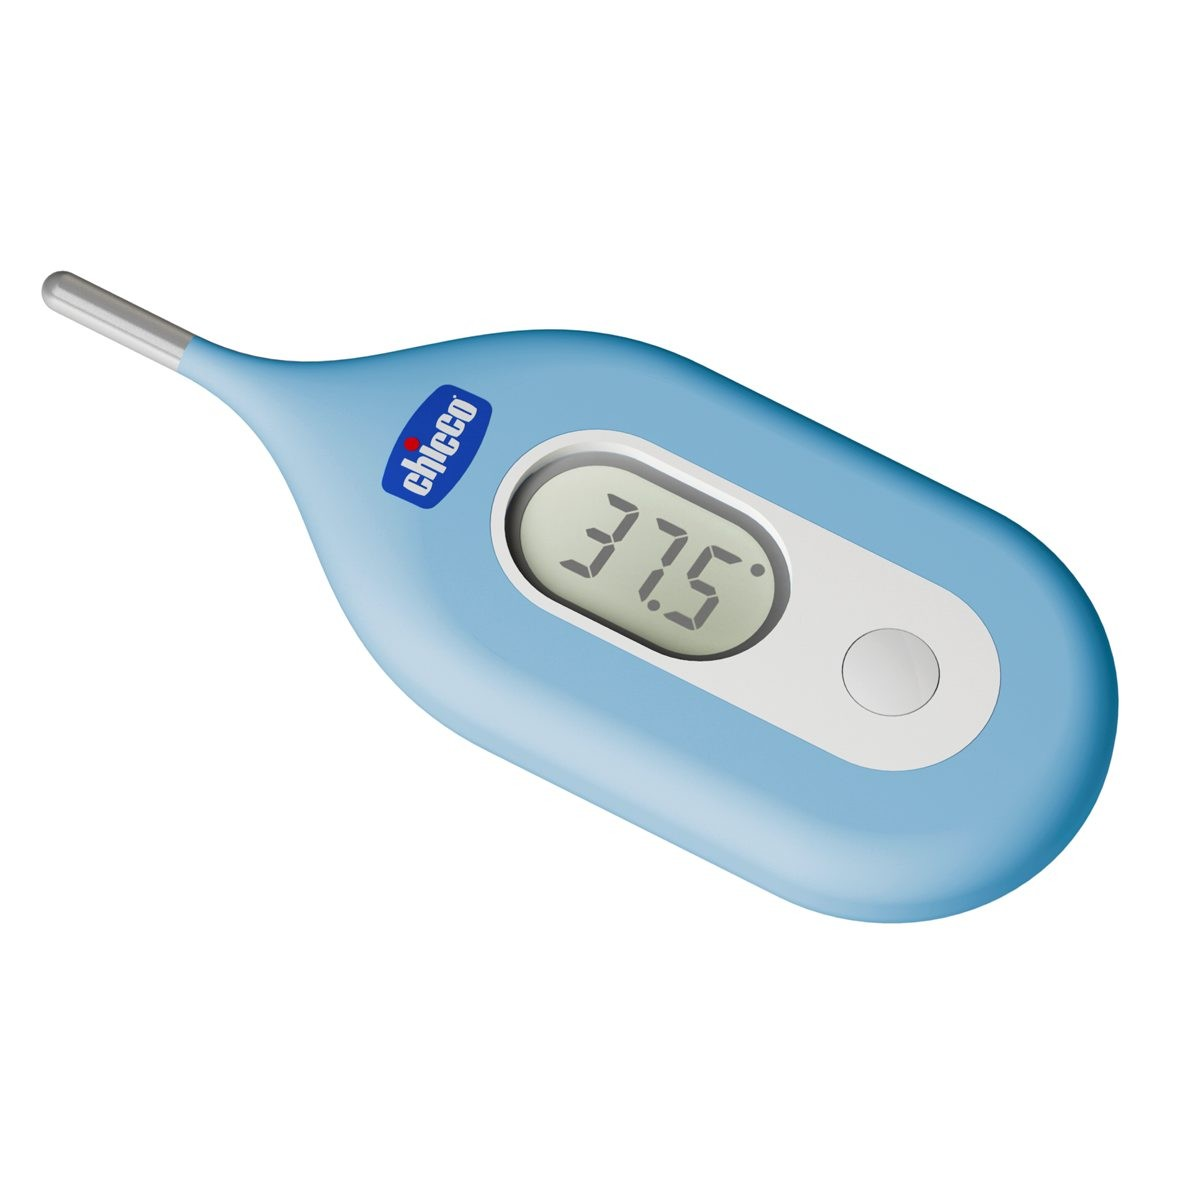 Chicco Flex Pediatric Digital Termometer